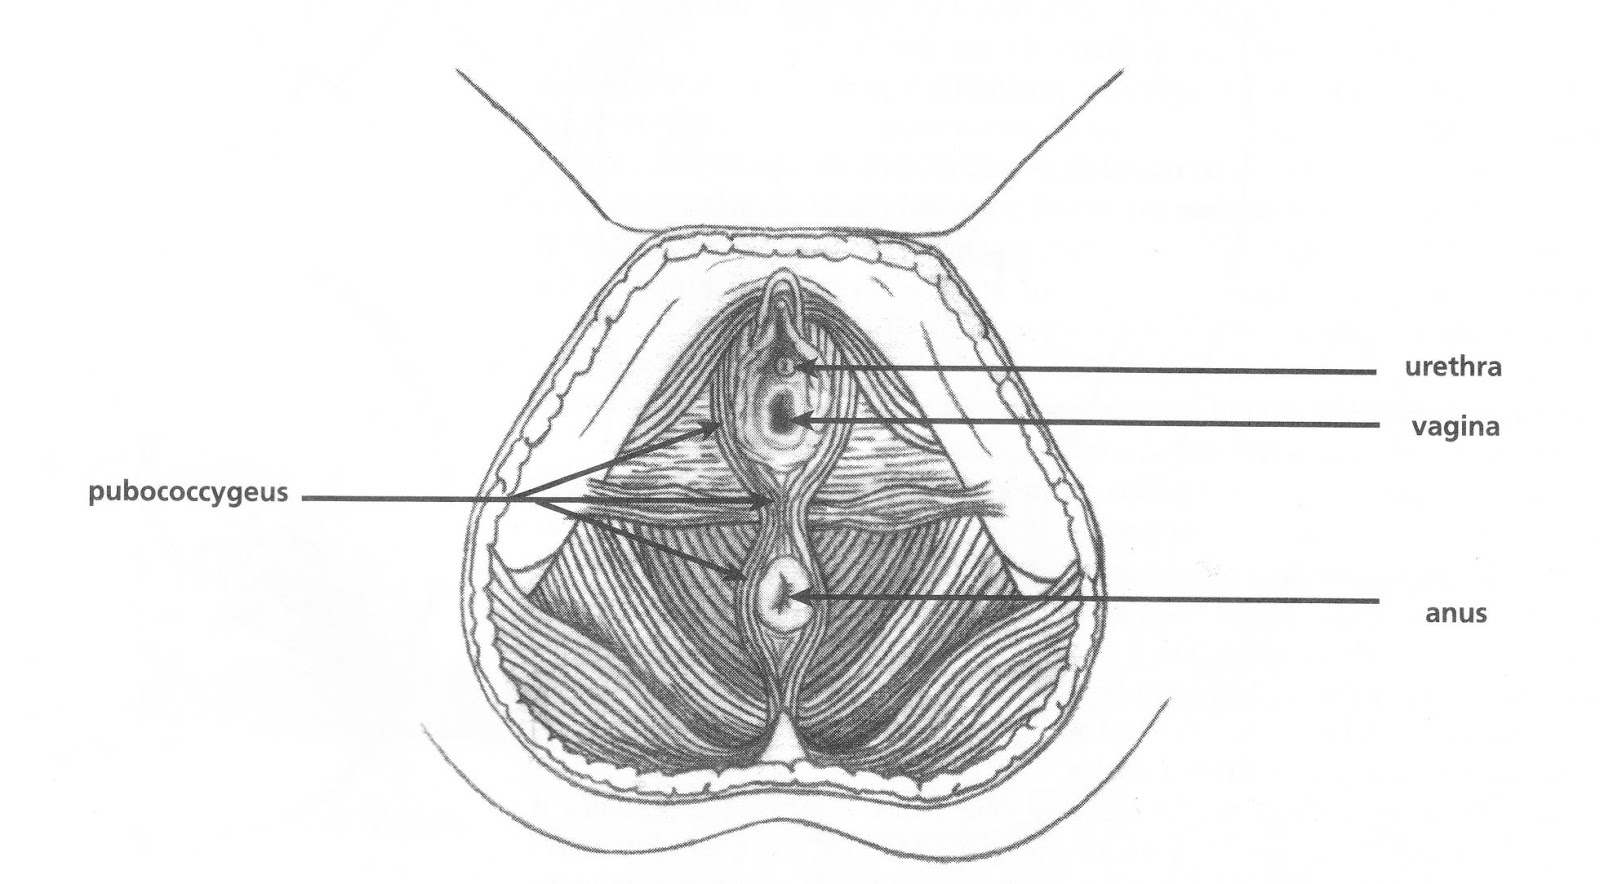 A cross section of the pelvic floor muscles